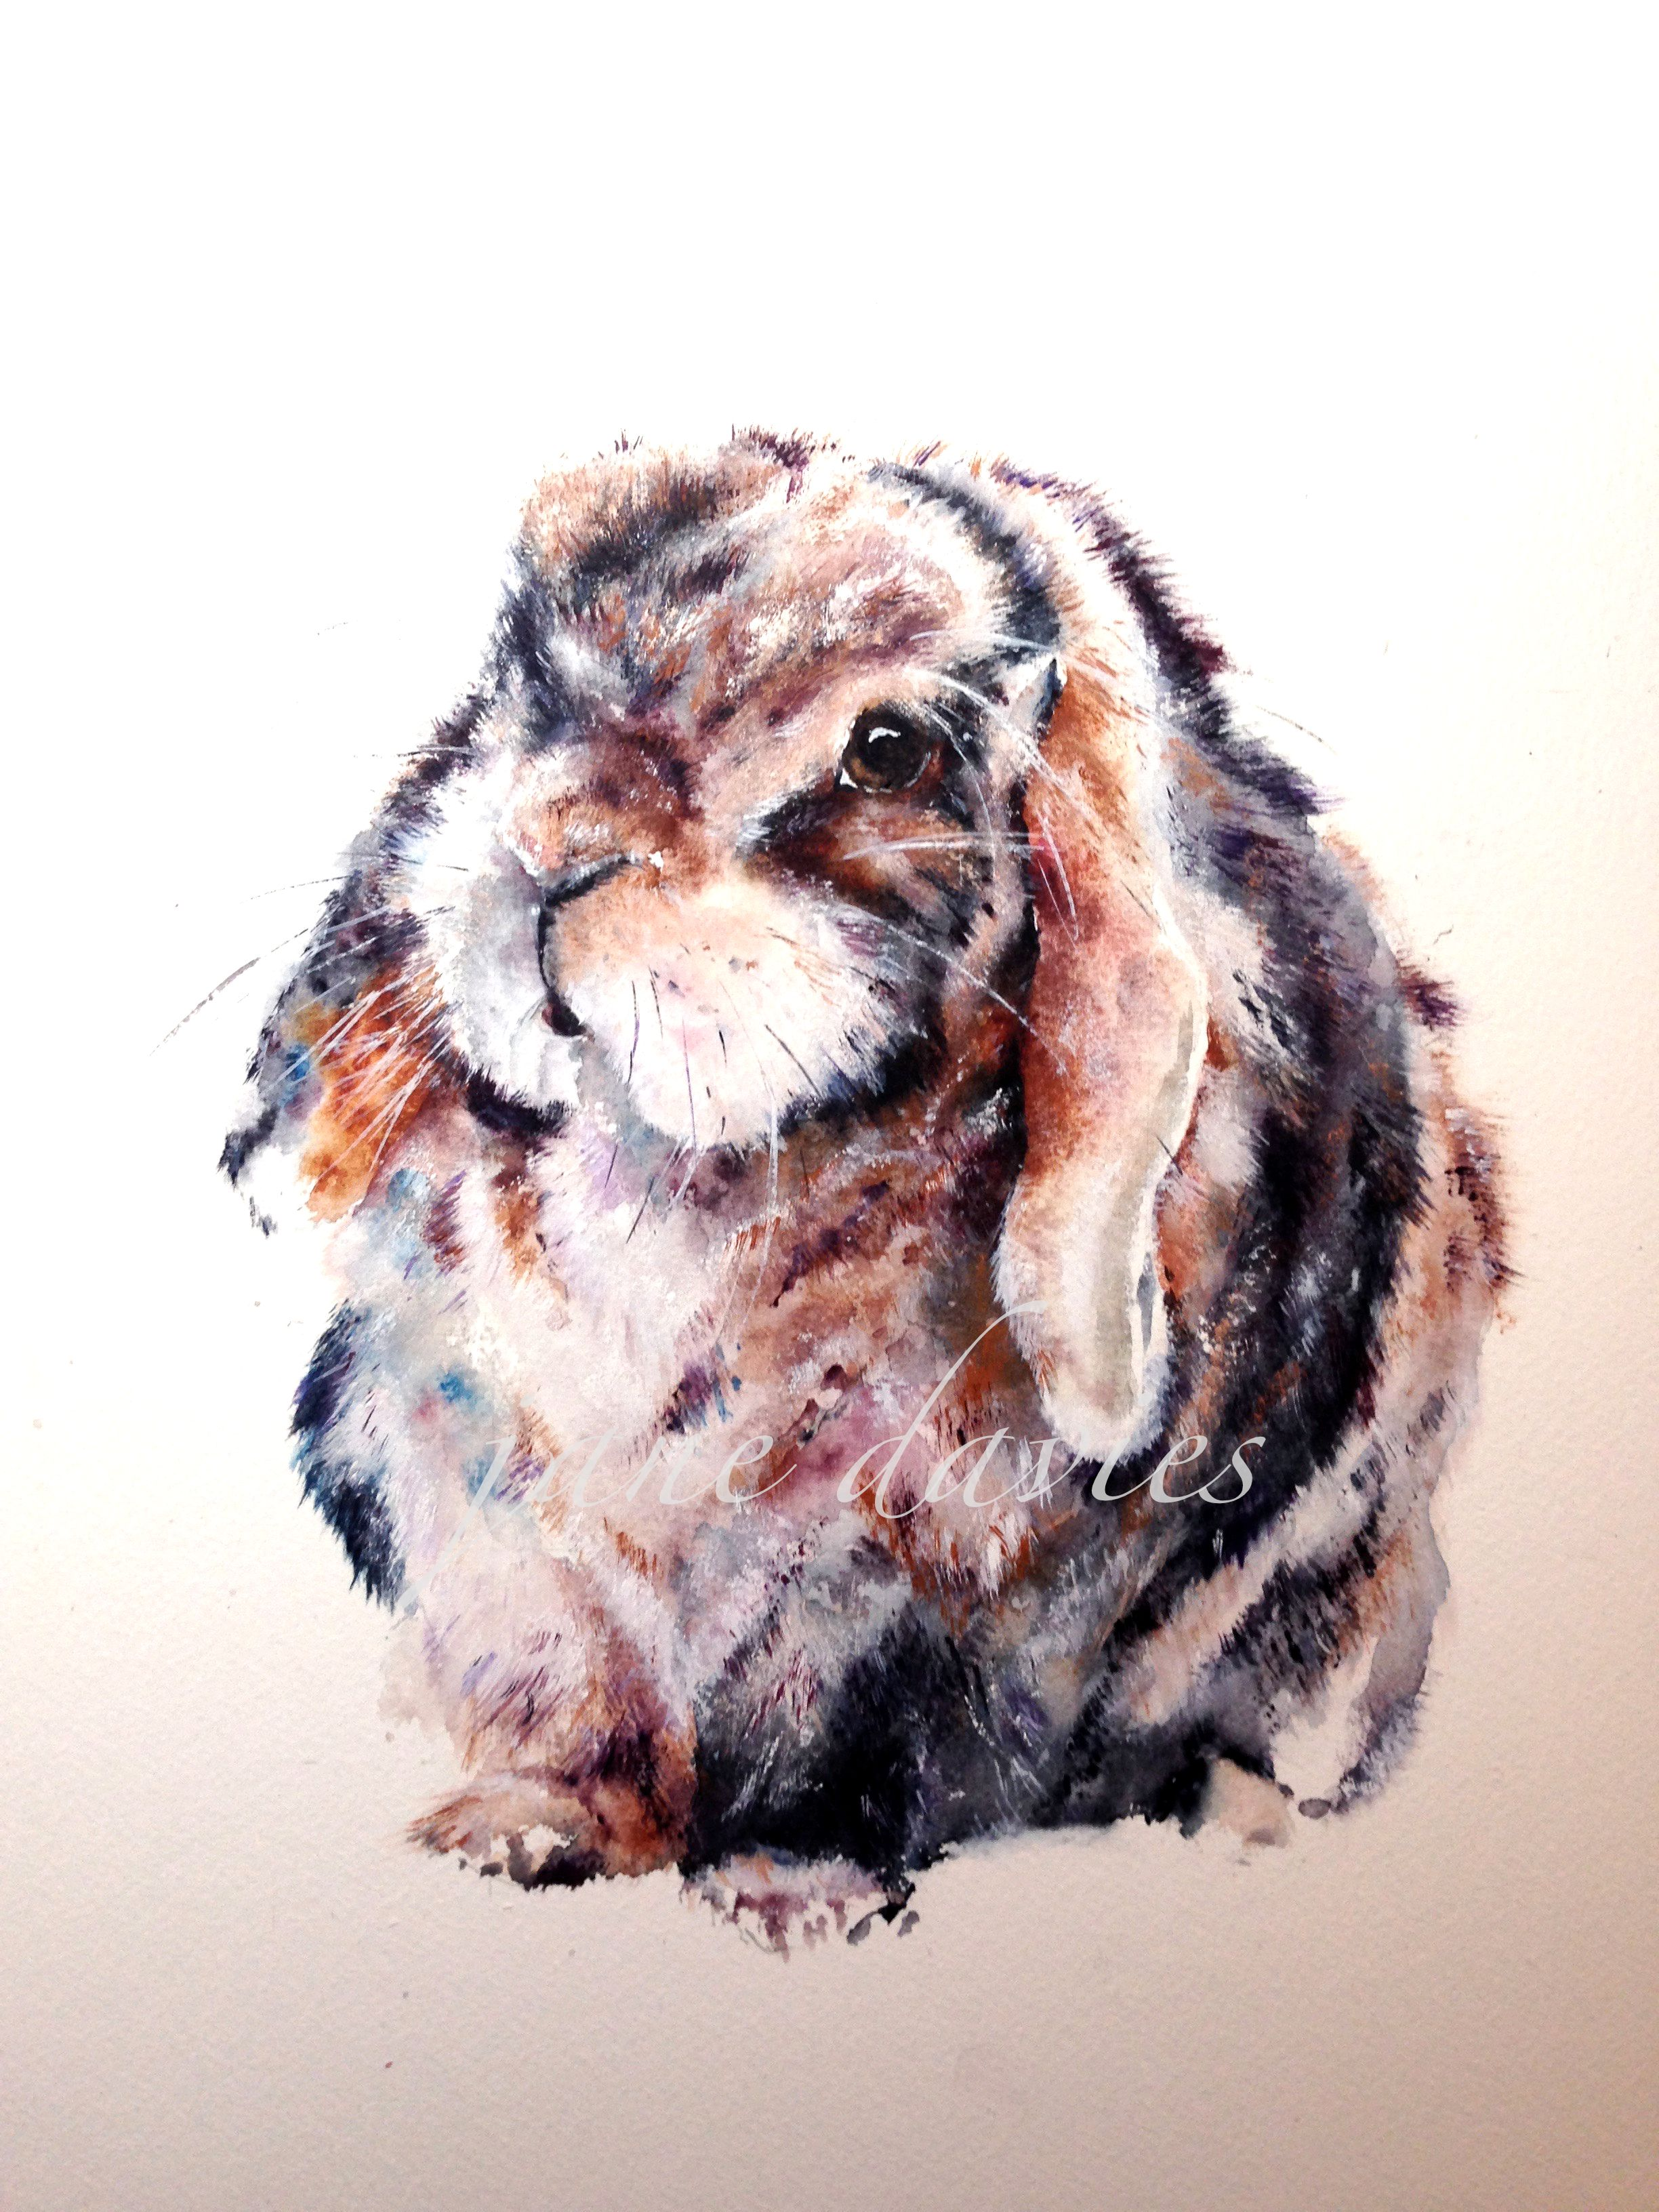 History of watercolor art - Pet Rabbit Painted In Watercolour For A Commission Piece By Artist Jane Davies